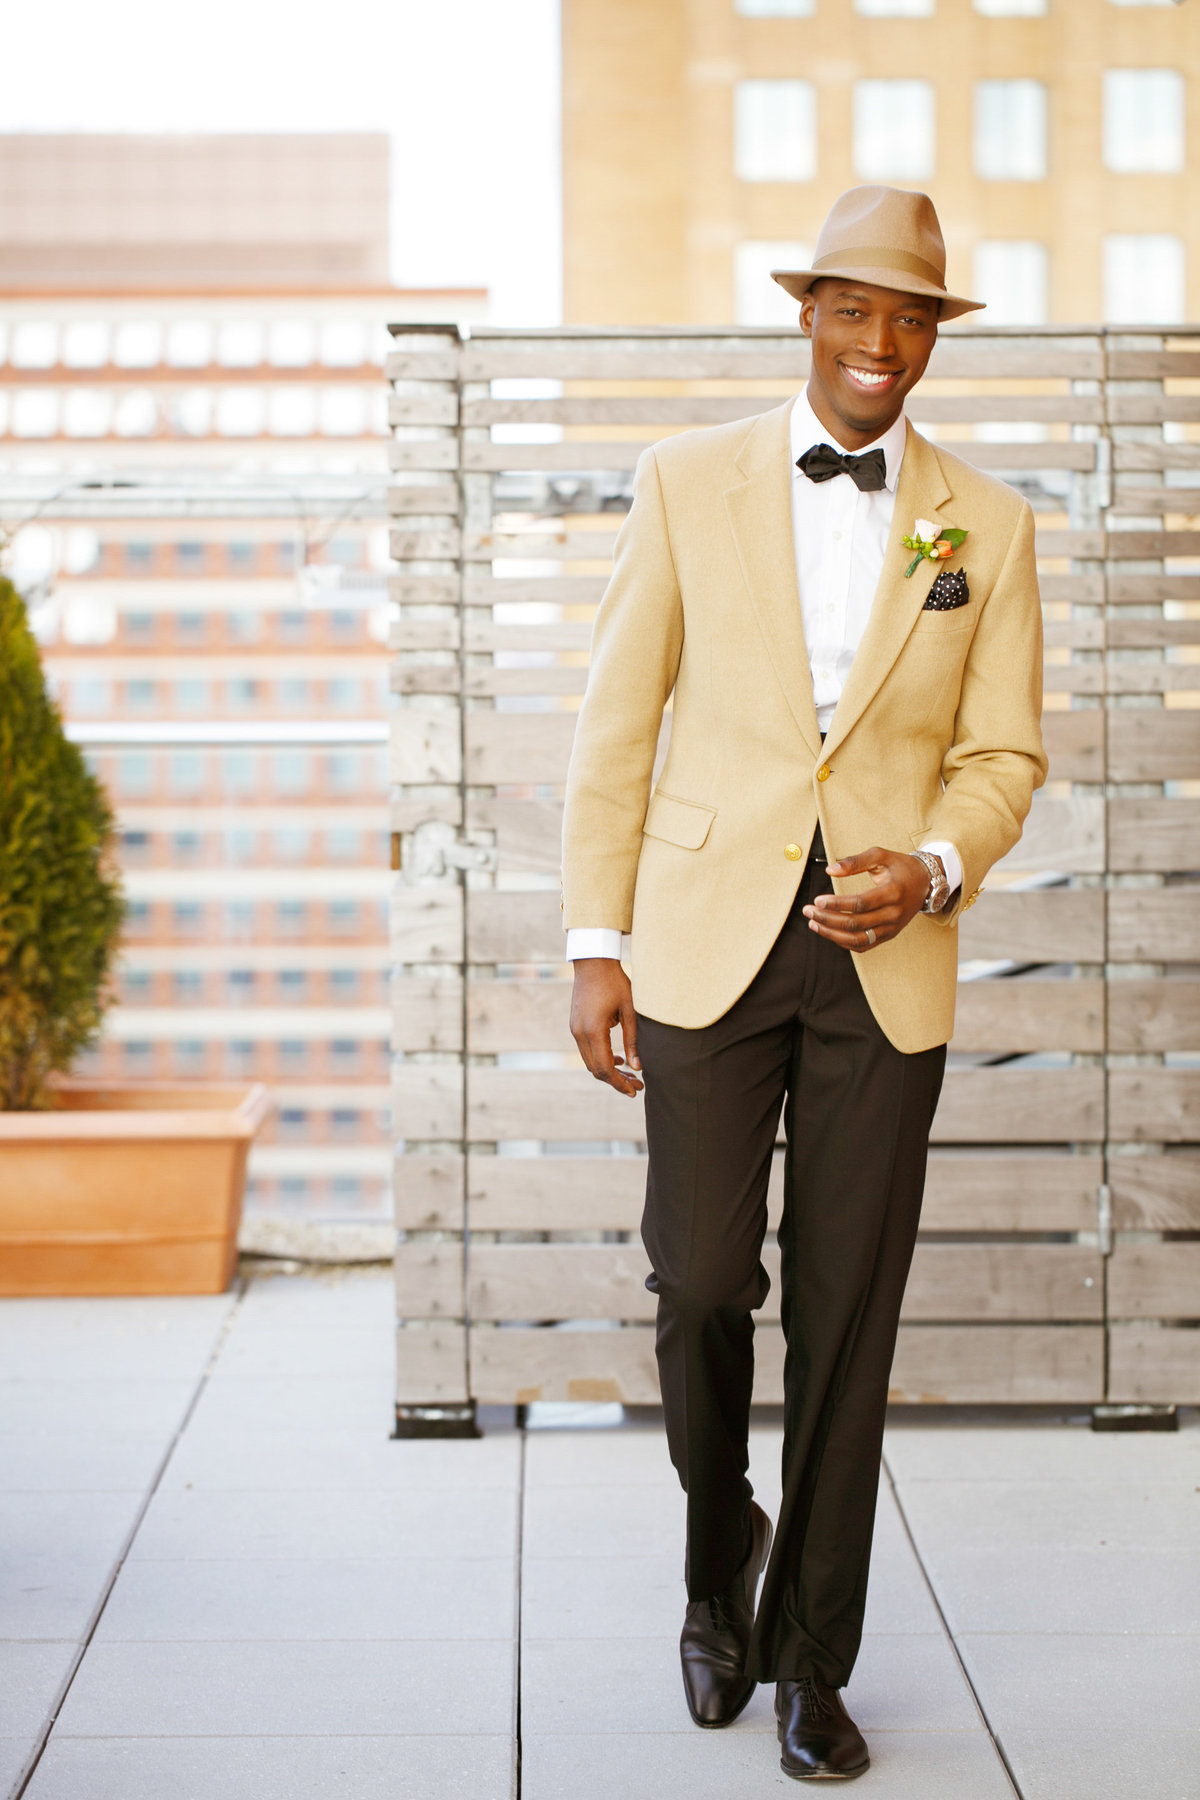 AmyAnaiz__Intimate_Elopement_Maison_May_Dekalb_Brooklyn_New_York_035